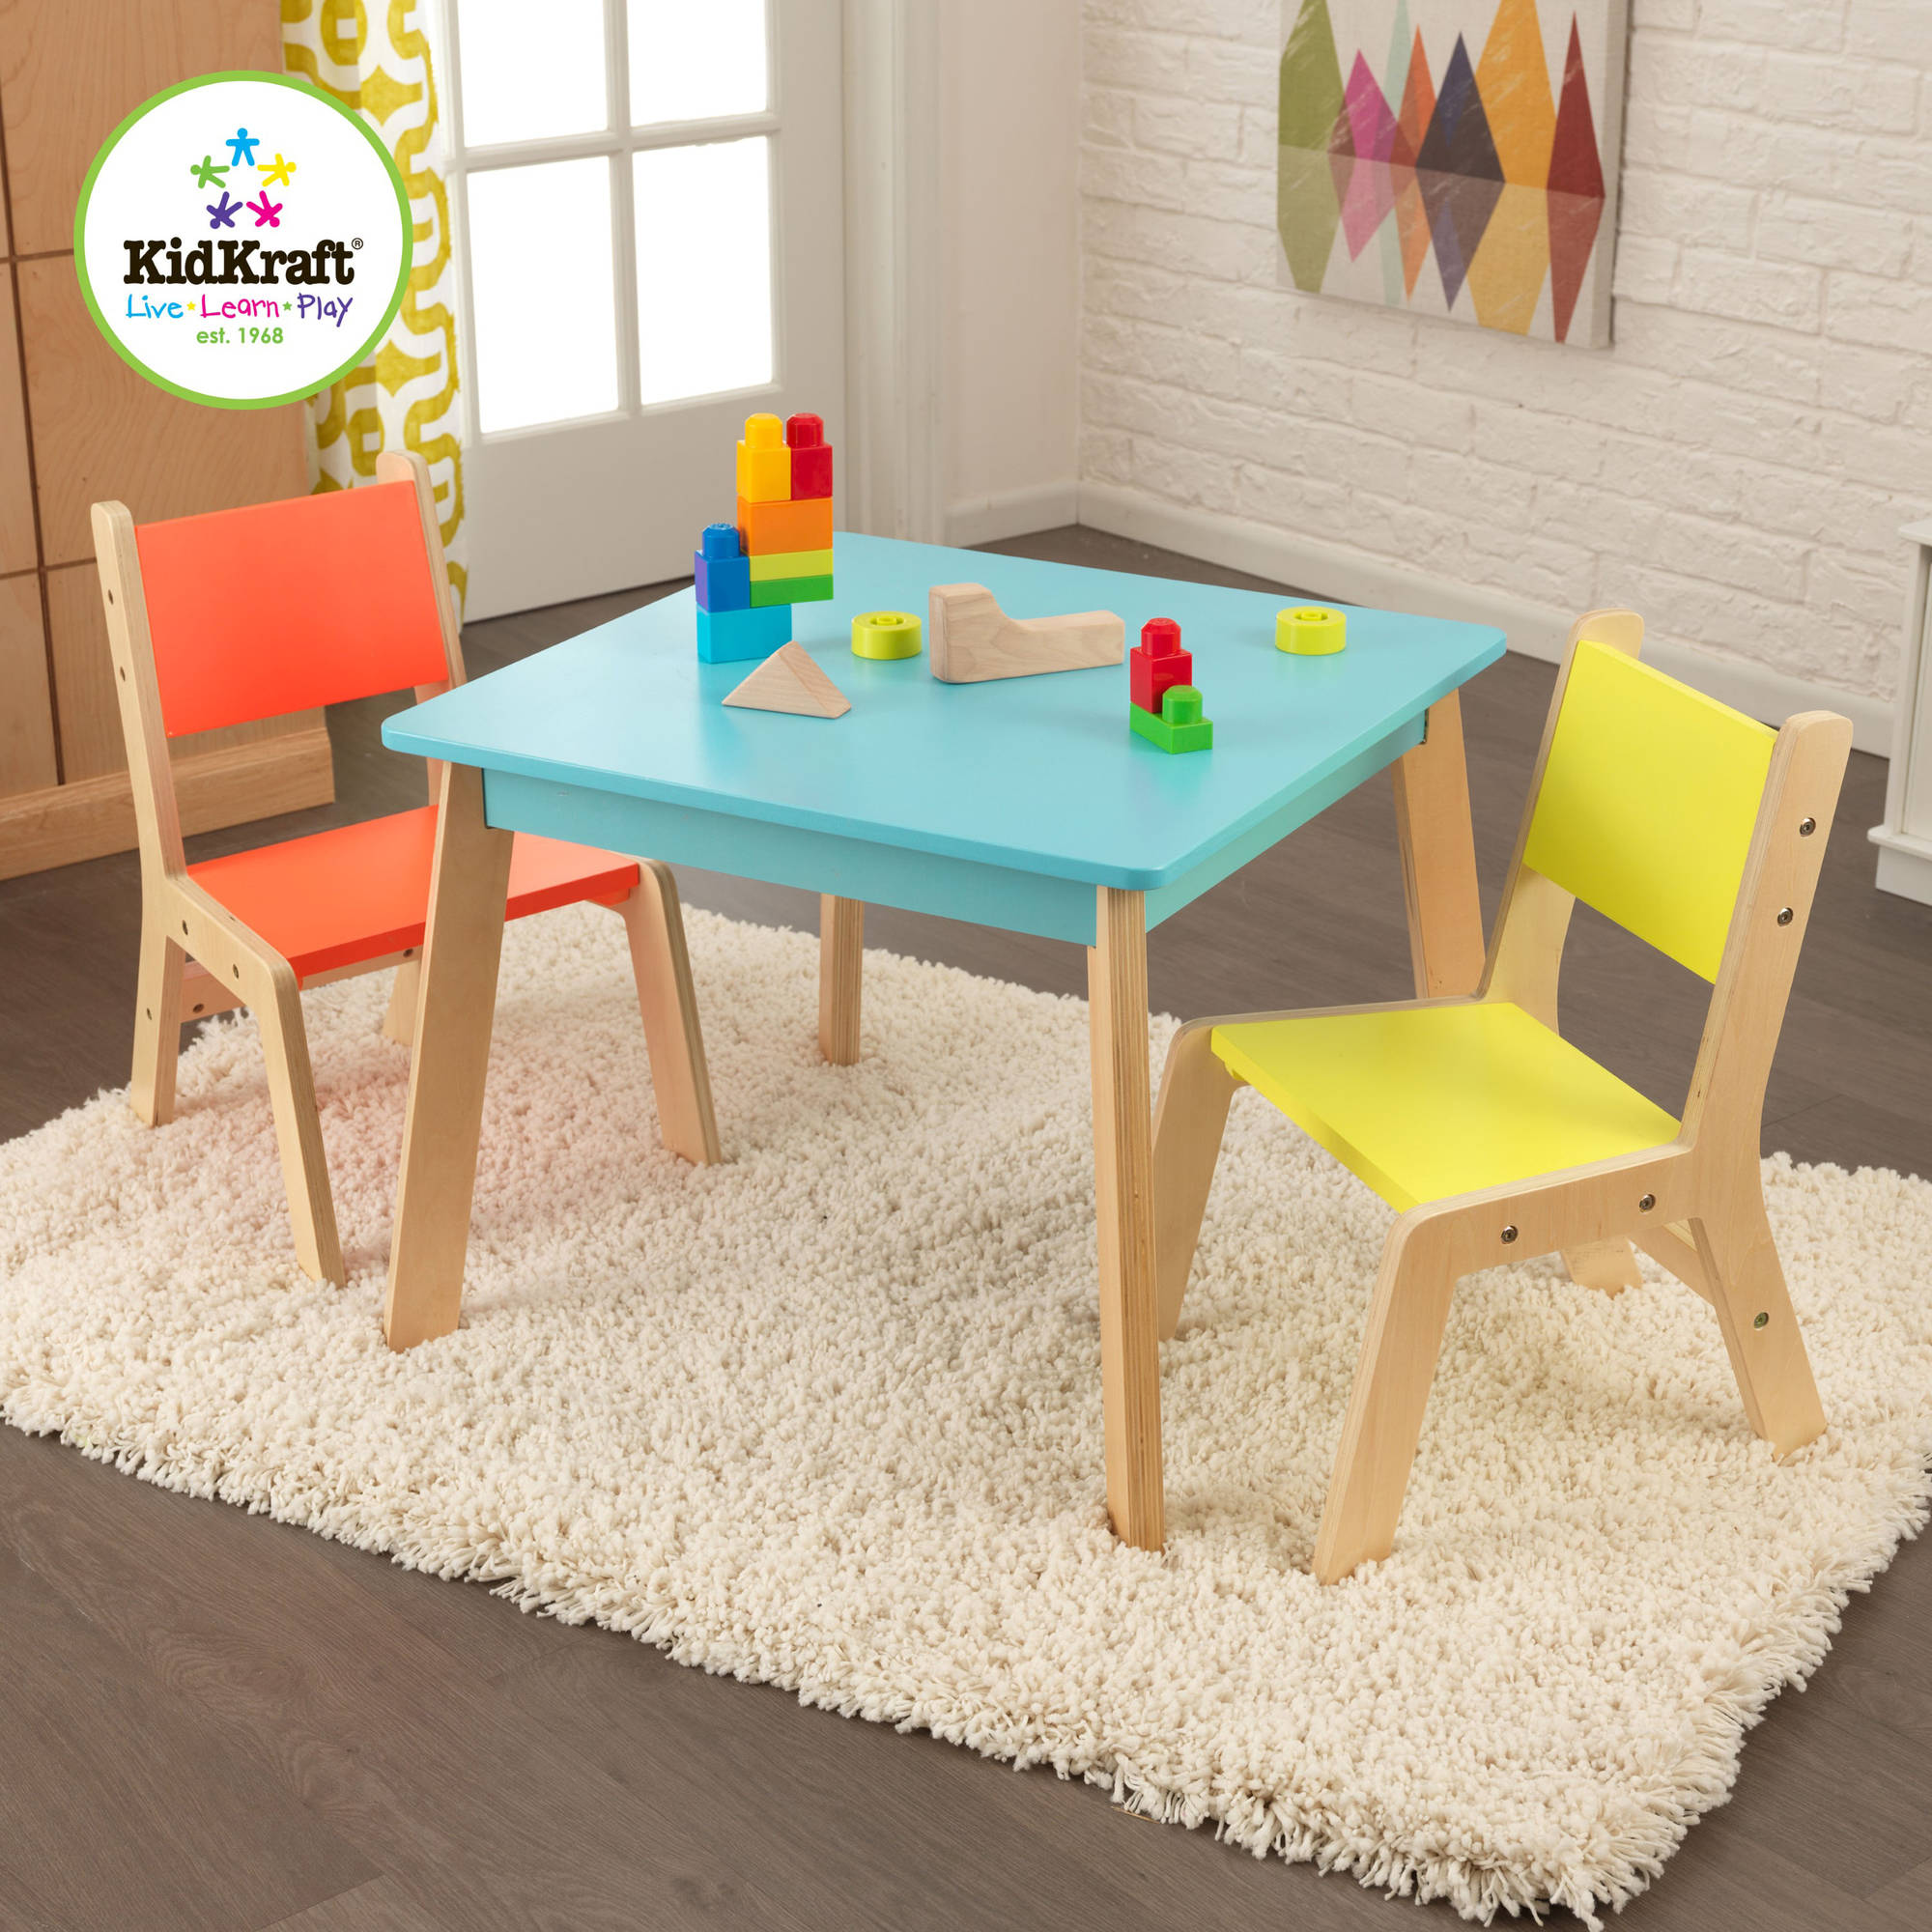 Table Walmart: Kids' Table & Chair Sets